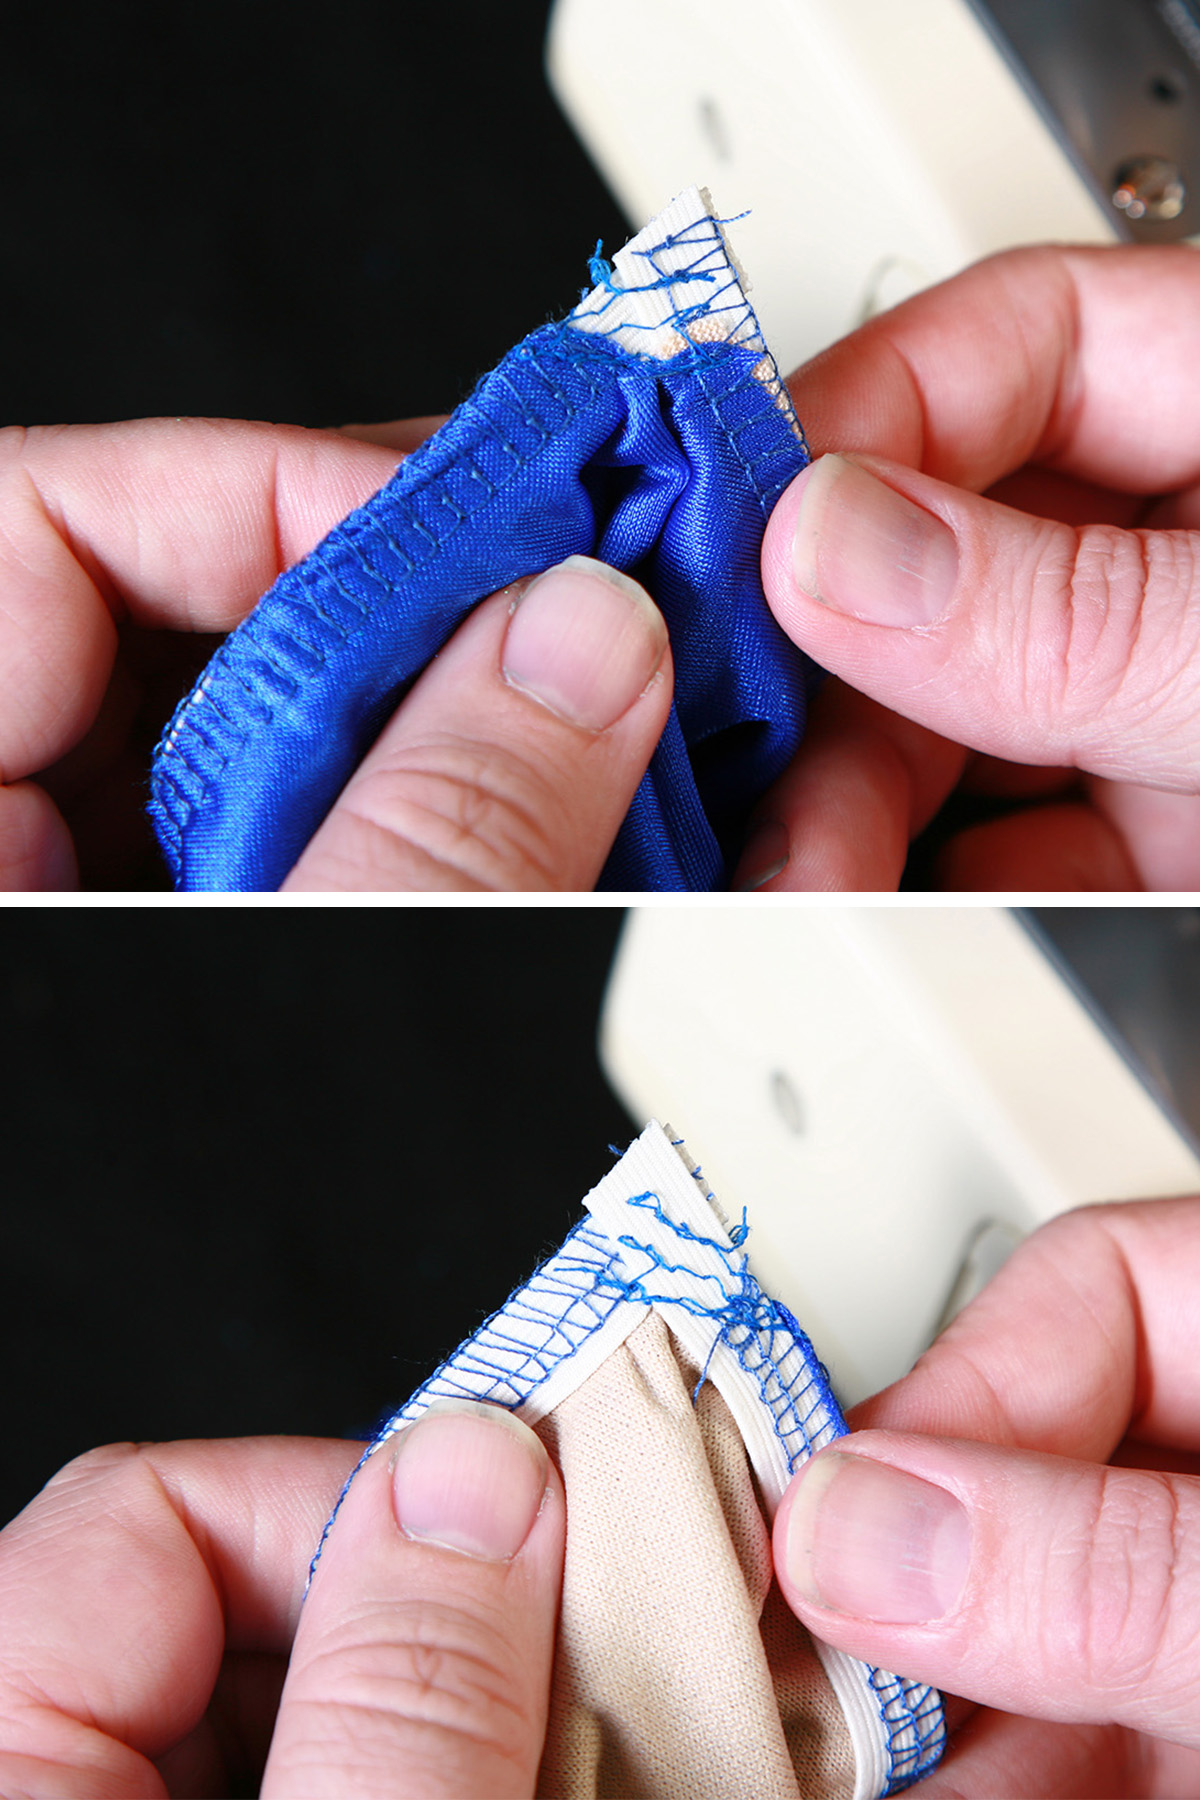 Elastic is being applied to the V, as described in the tutorial.